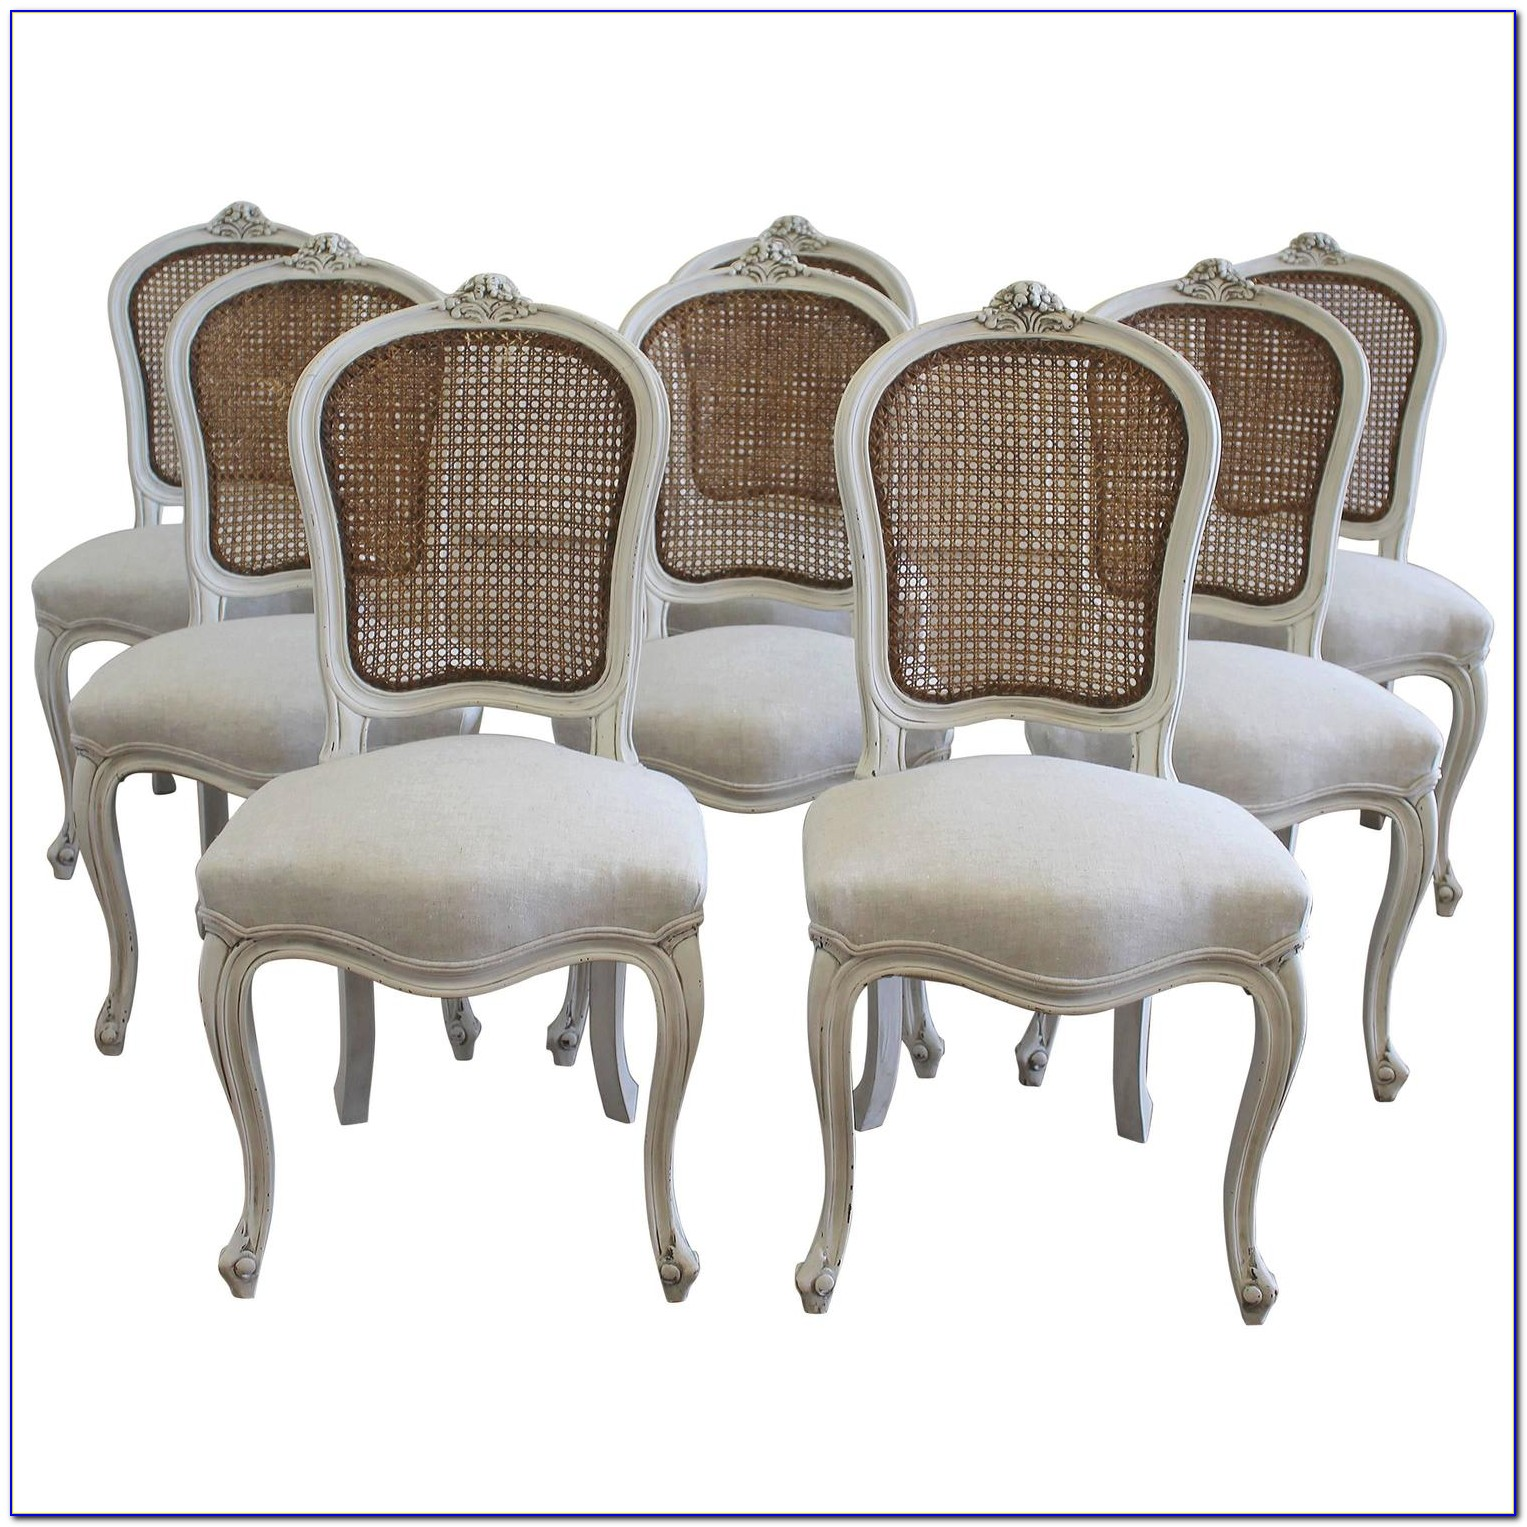 Vintage French Cane Back Chairs